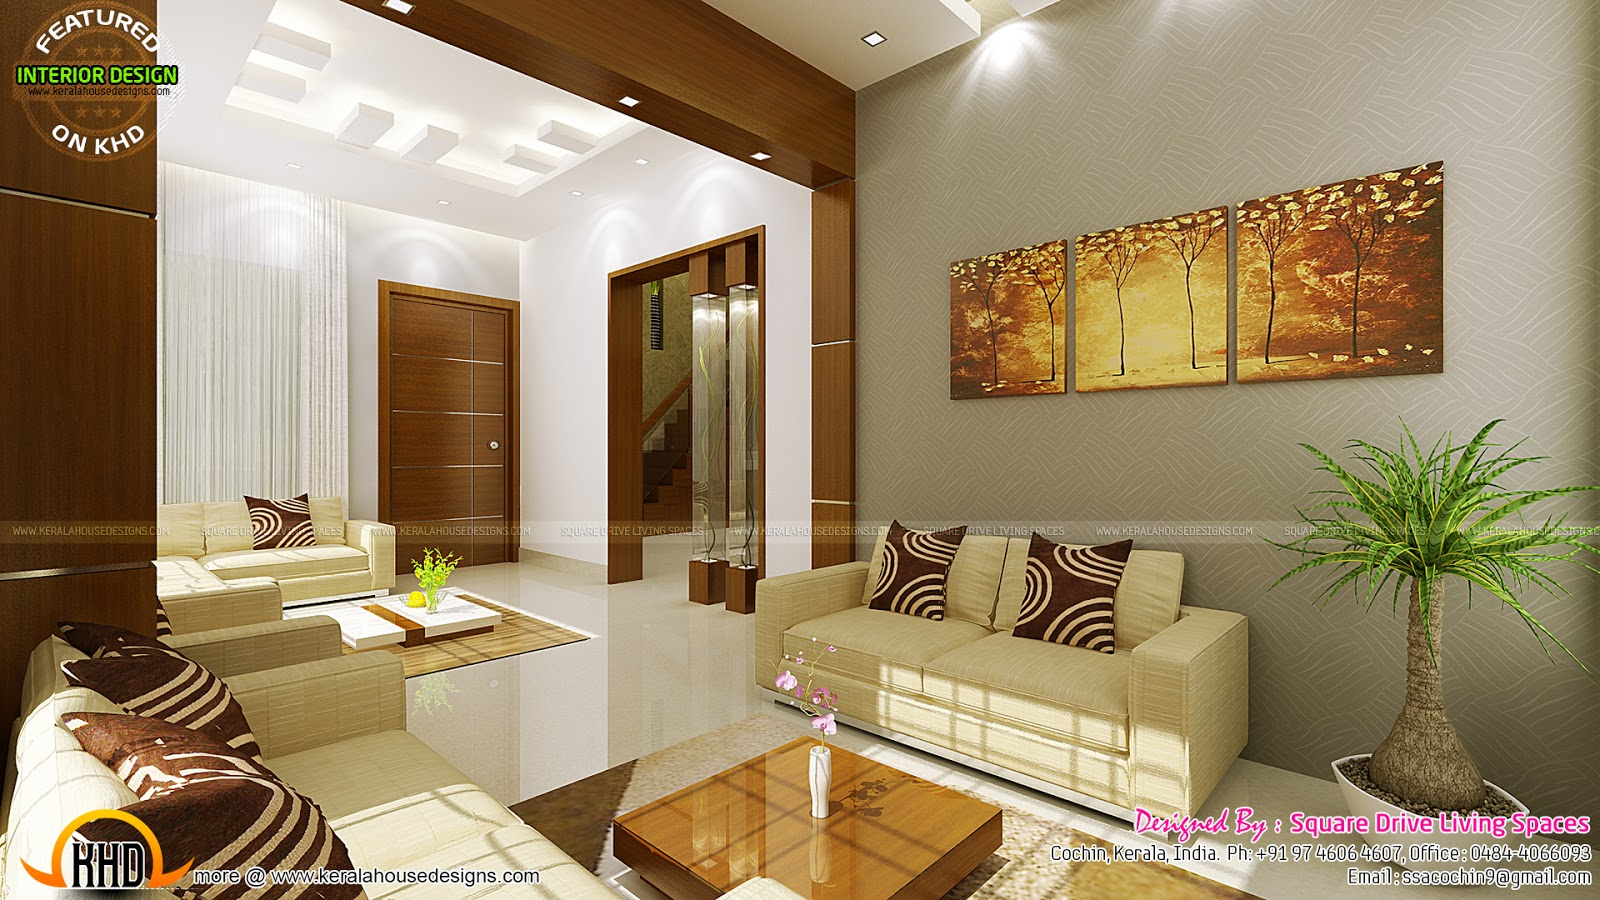 Contemporary kitchen dining and living room kerala home for House designs interior